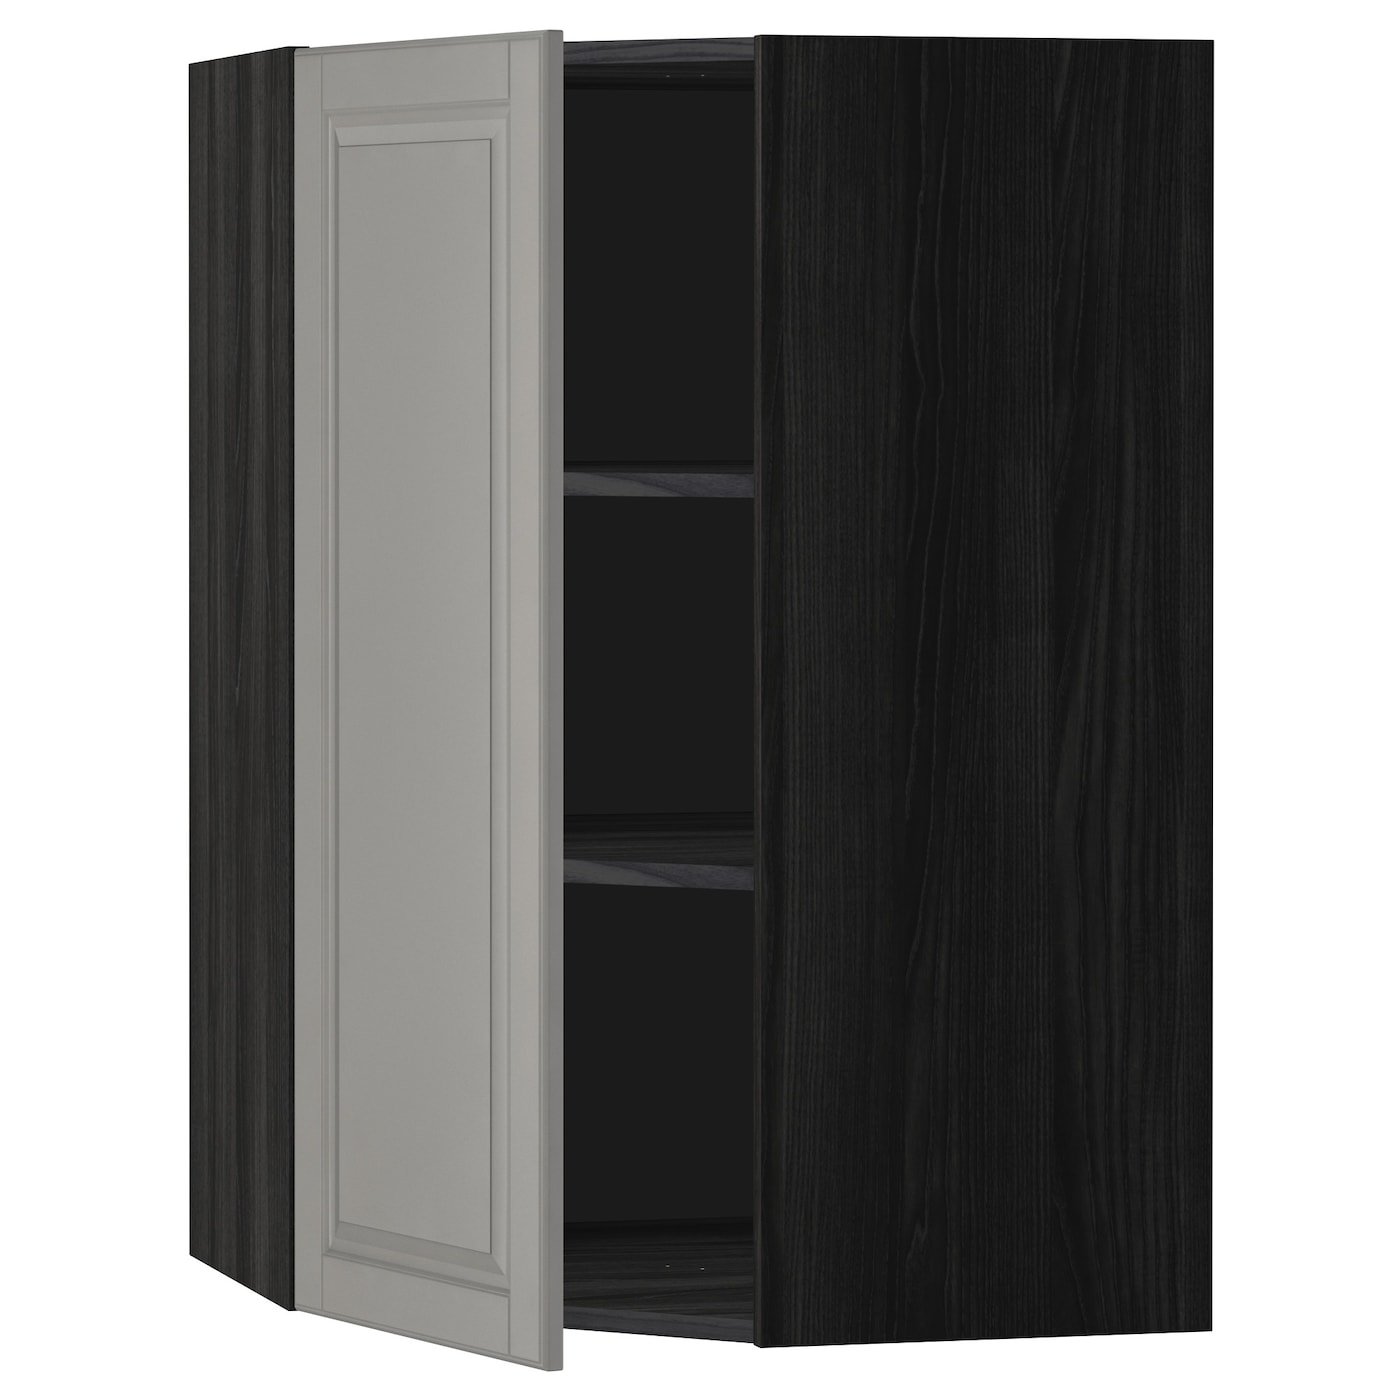 corner wall cabinet kitchen metod corner wall cabinet with shelves black bodbyn grey 5880